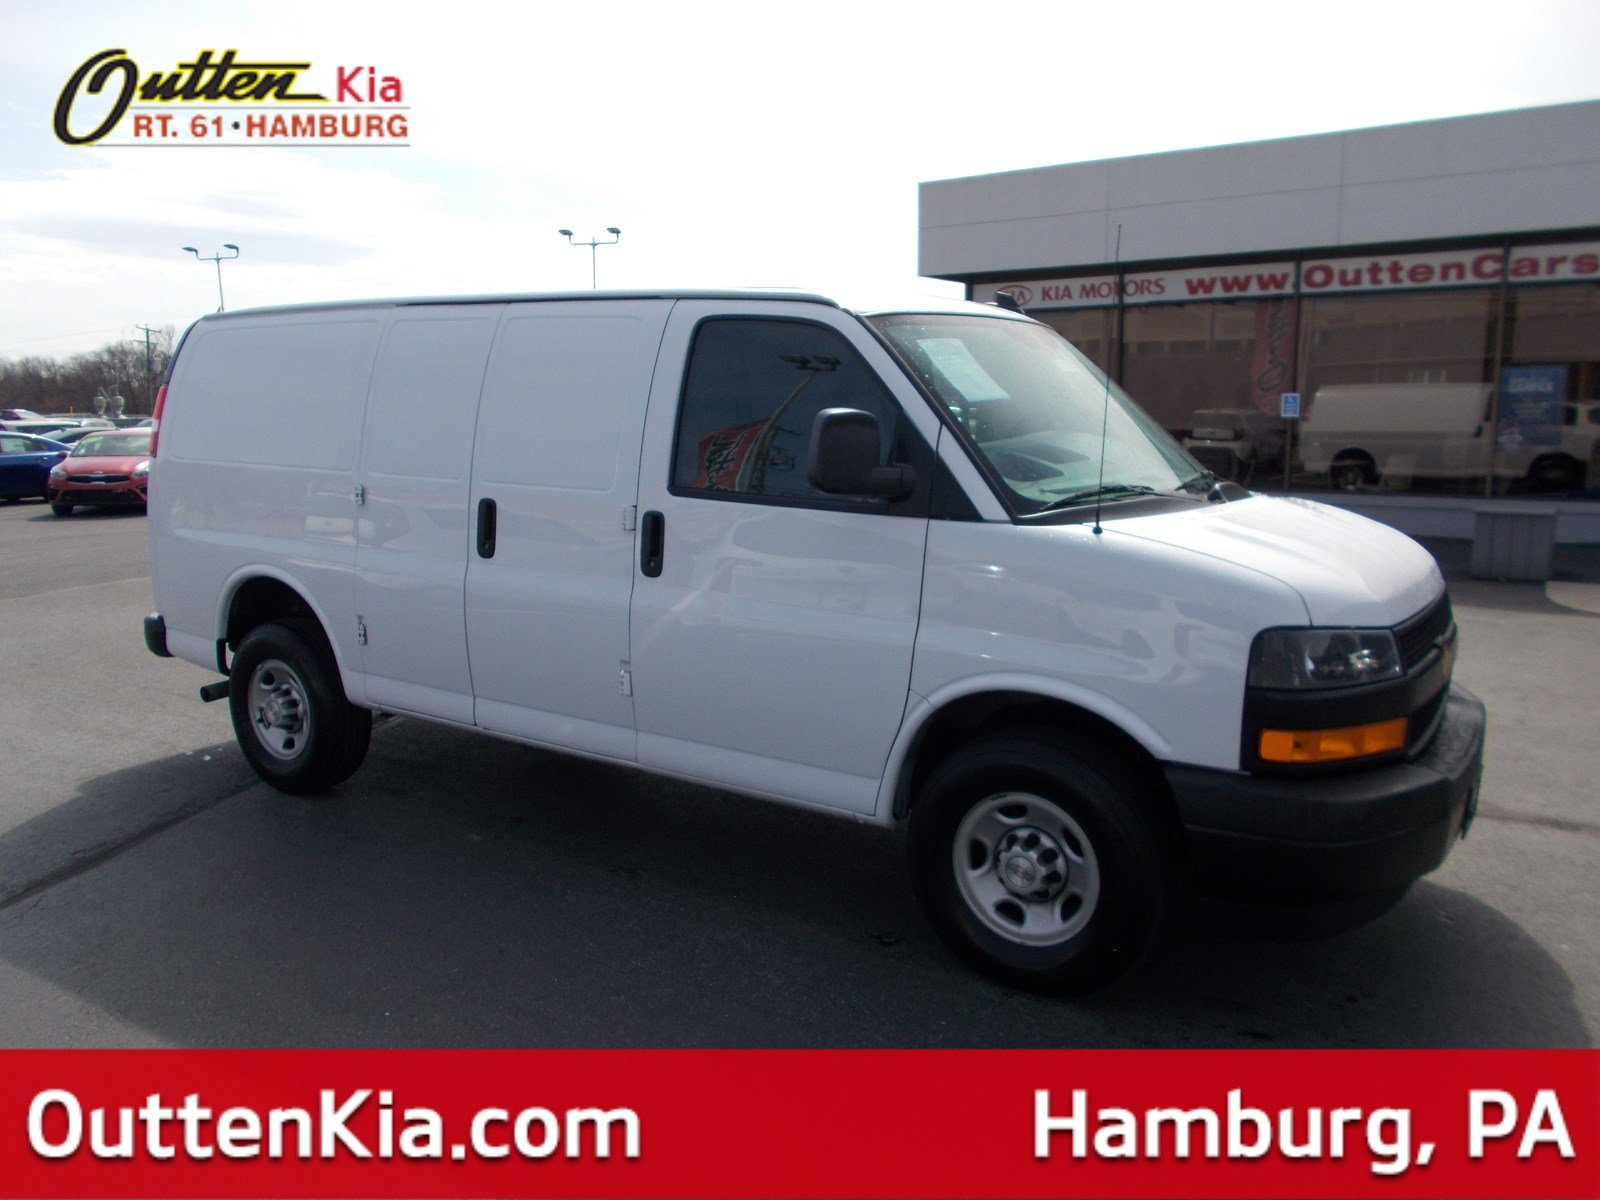 b49de1a906 Pre-Owned 2018 Chevrolet Express Cargo Van Full-size Cargo Van in ...